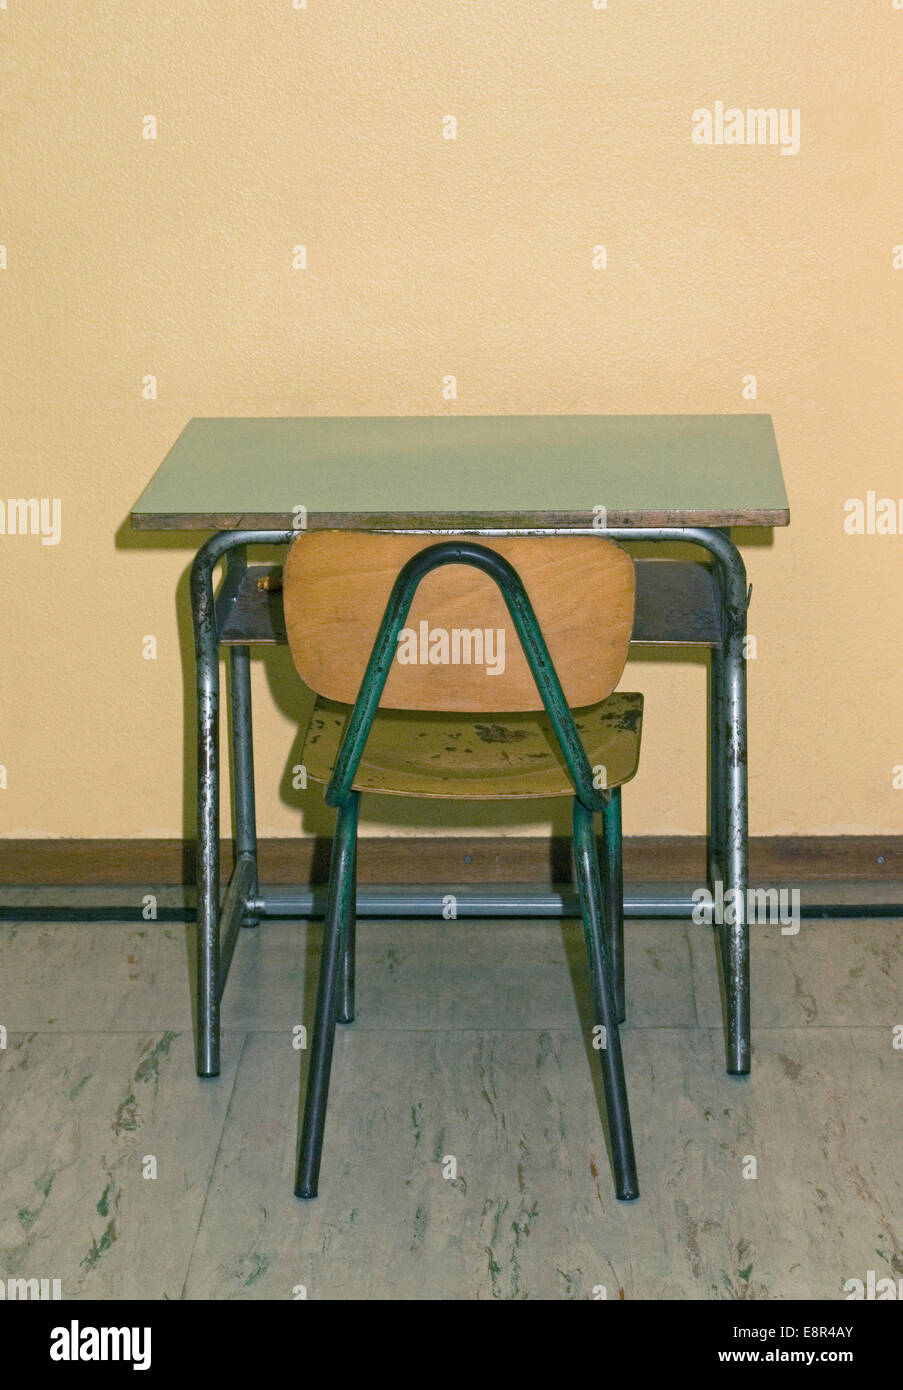 Old School Desk And Chair Stock Photo 74267059 Alamy